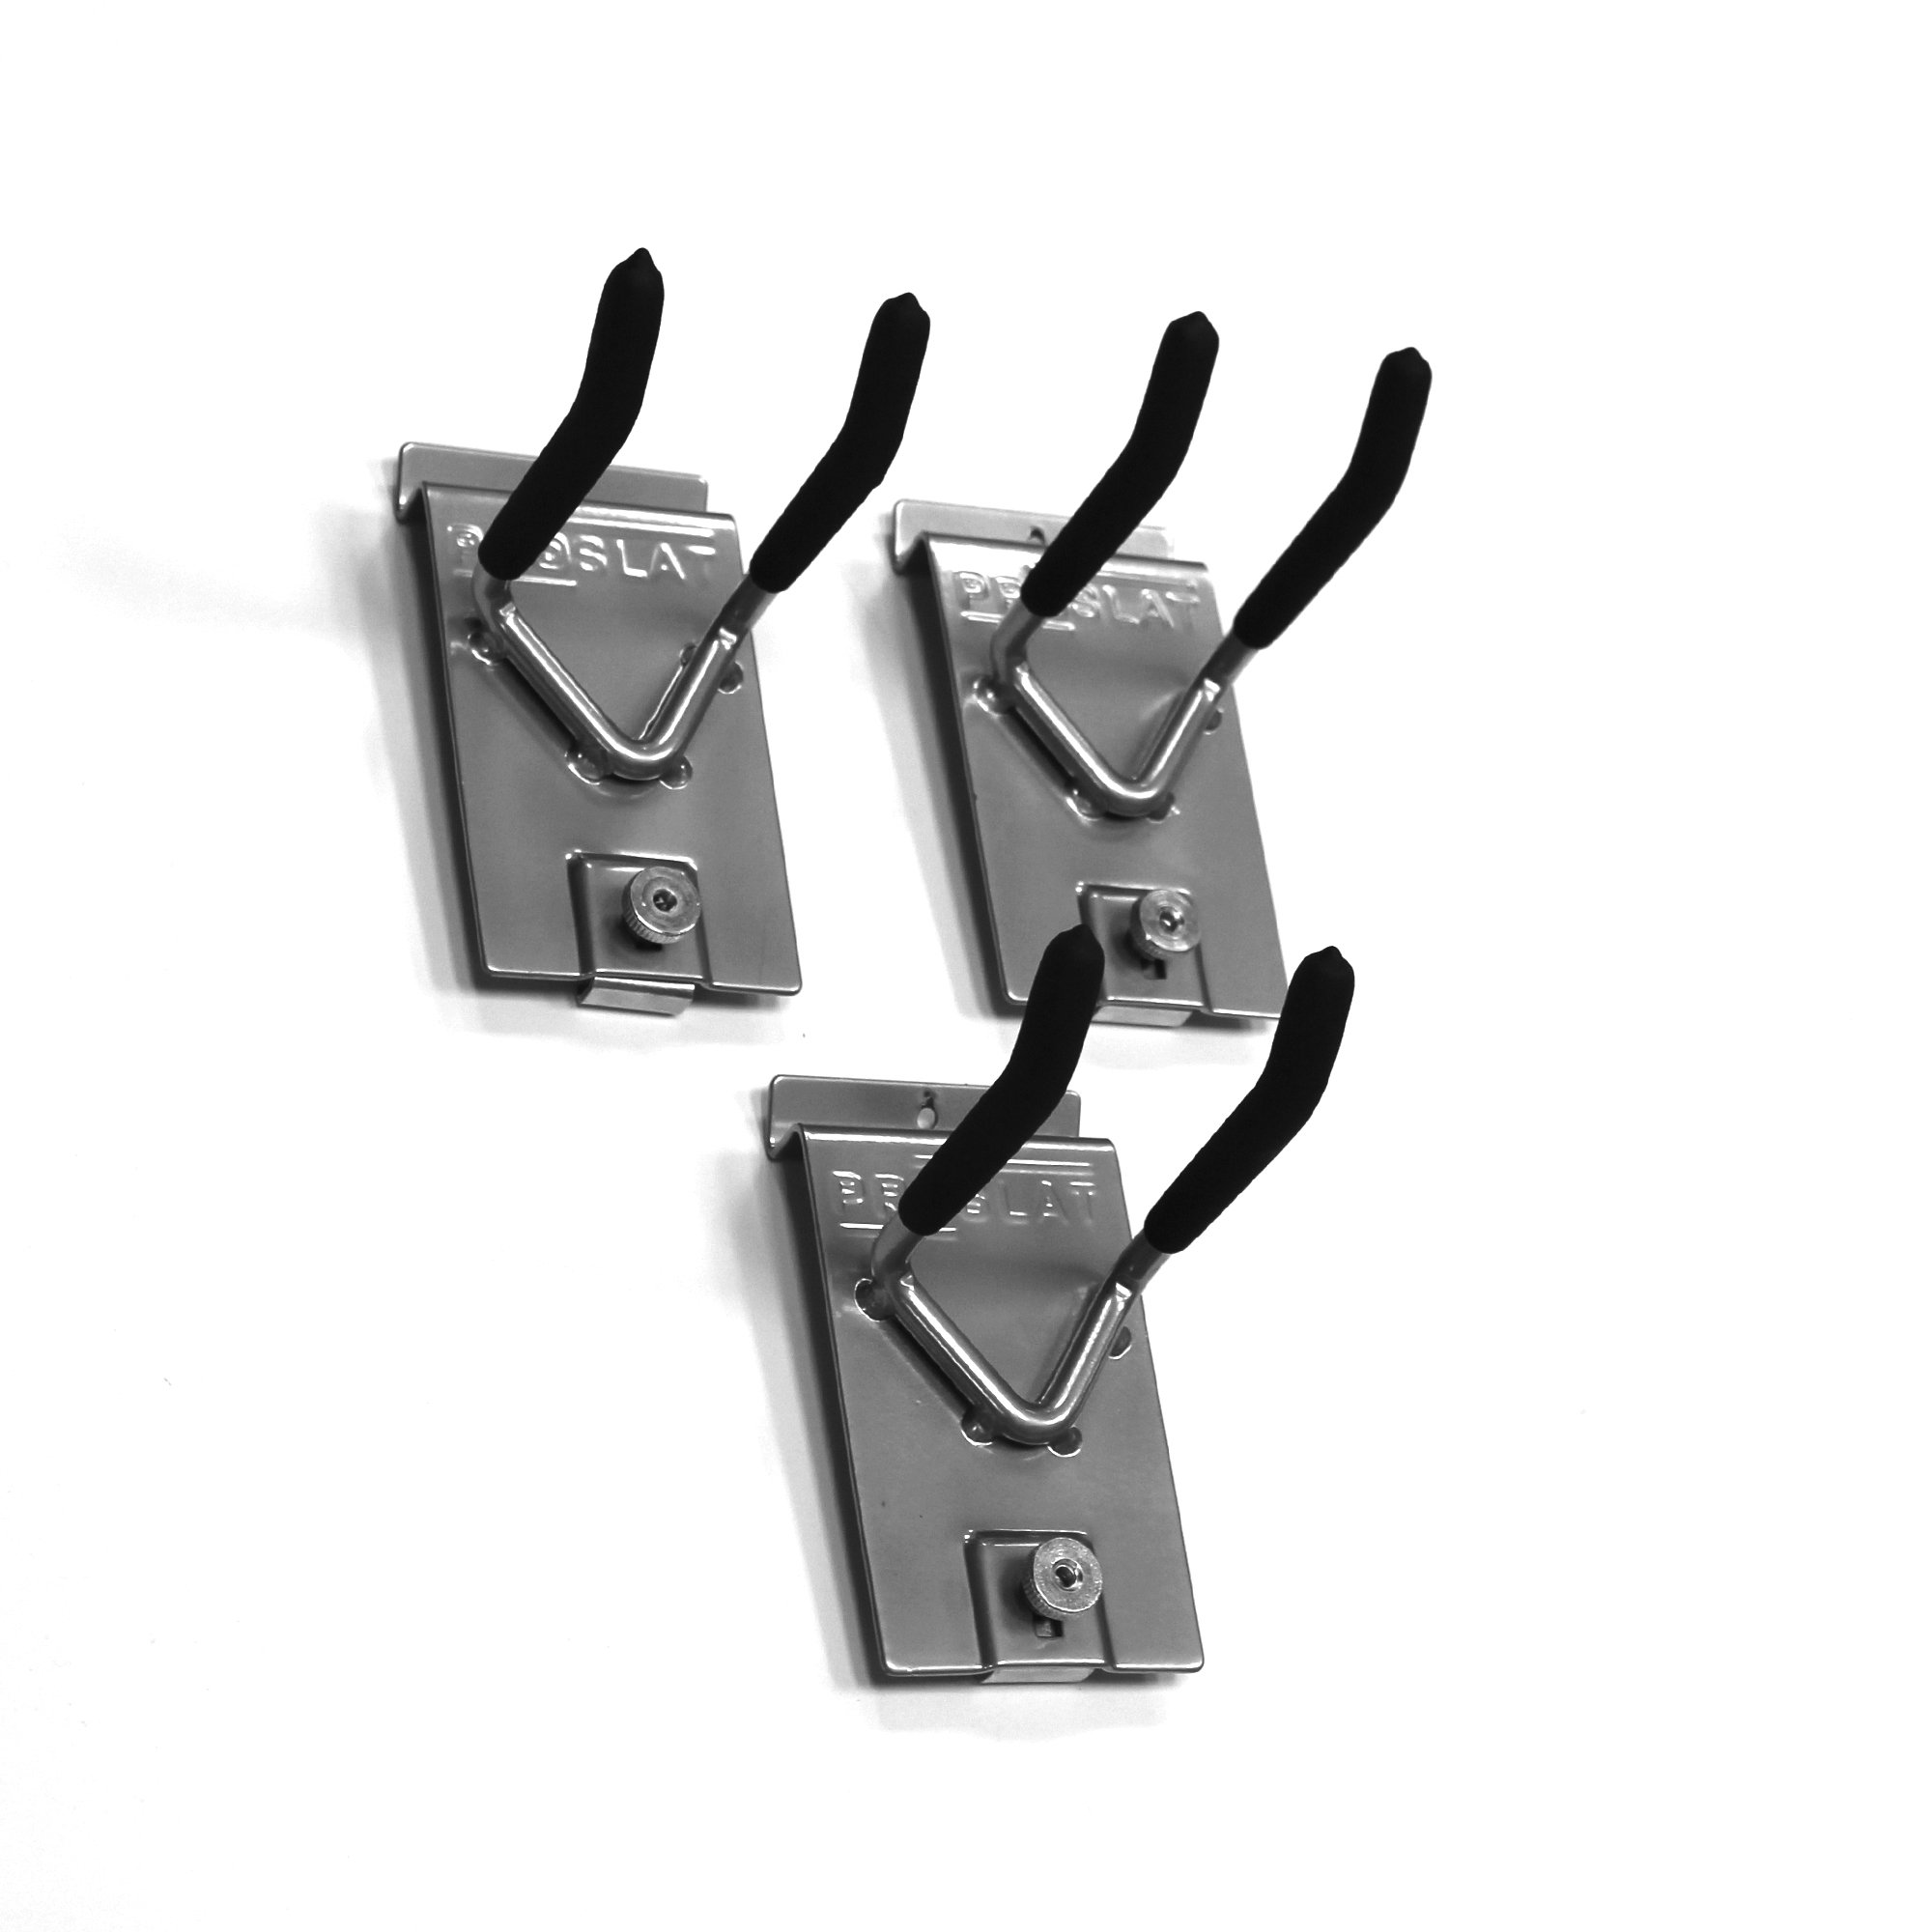 Proslat 13011 Double 4-Inch Locking Hooks Designed for Proslat PVC Slatwall, 3-Pack by Proslat